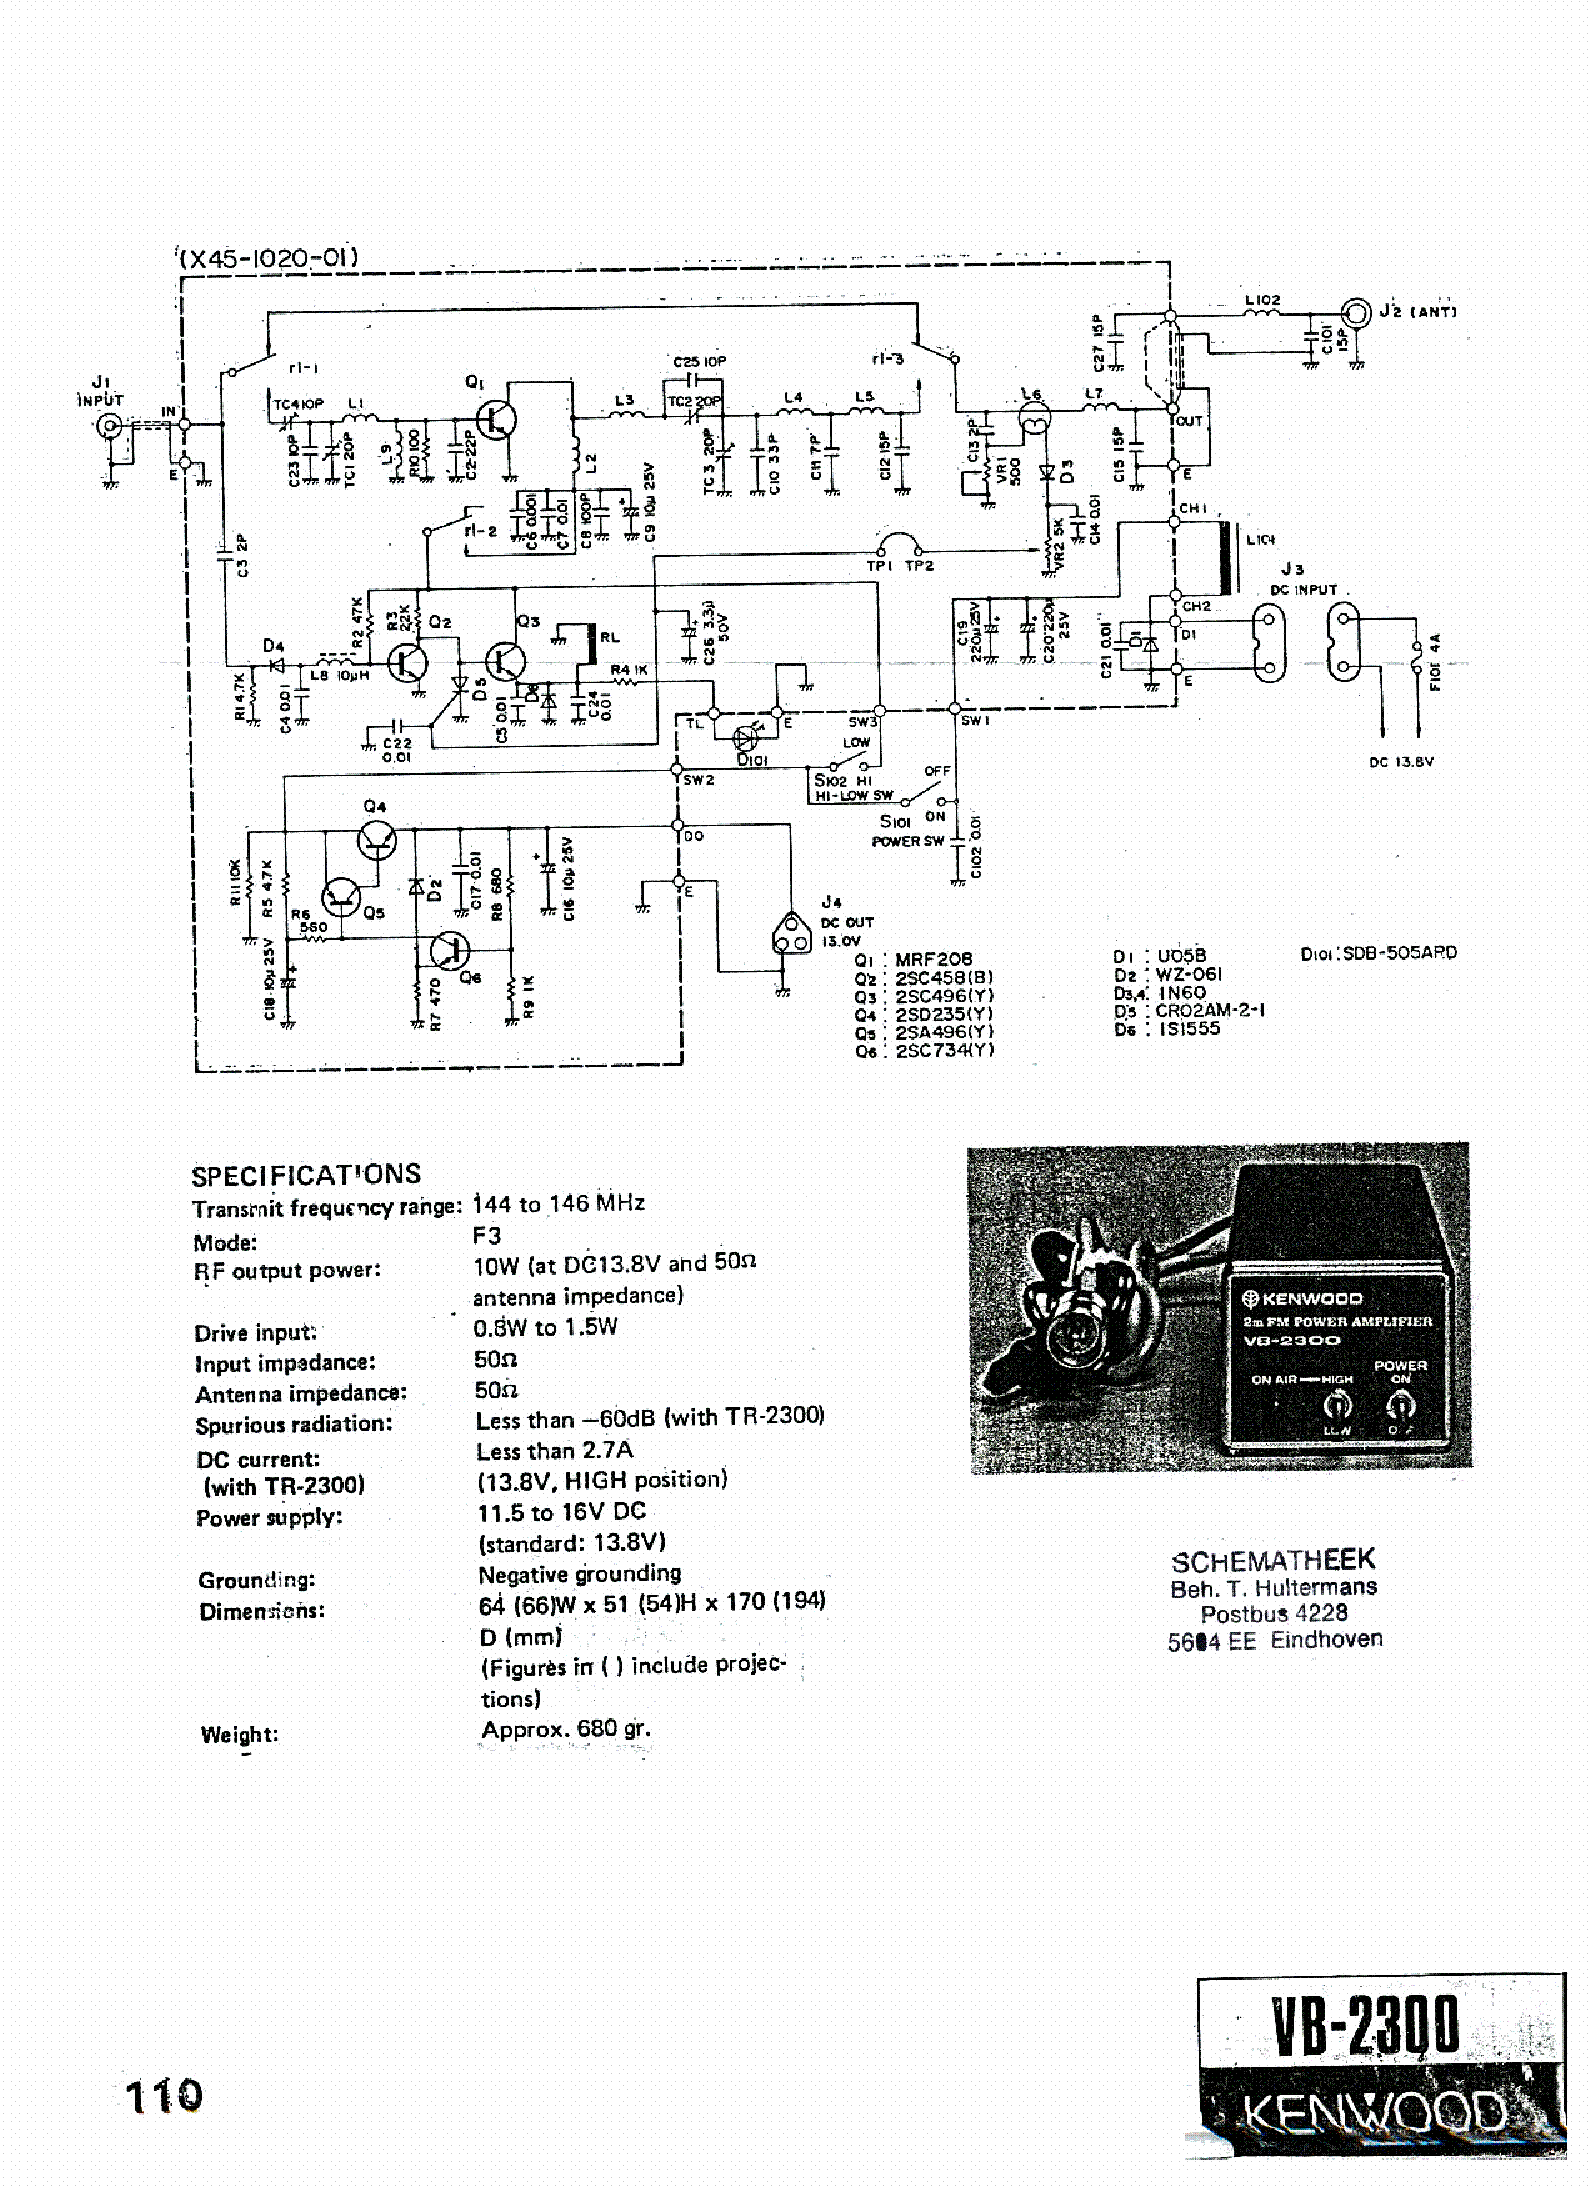 KENWOOD VB-2300 SCH service manual (1st page)